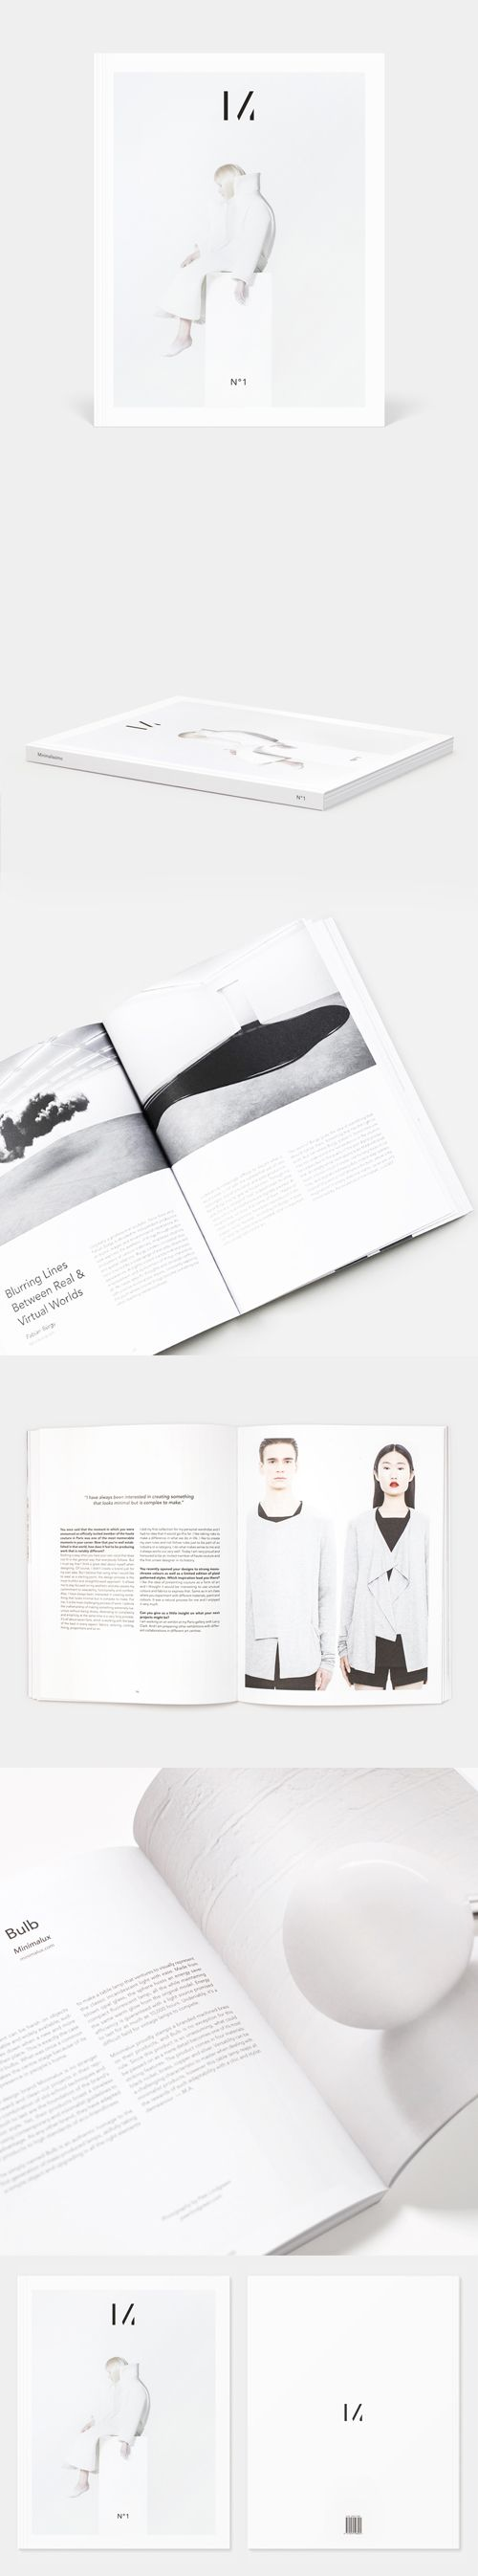 Minimalissimo Issue Nº1: a magazine that celebrates the best of minimalism in design.